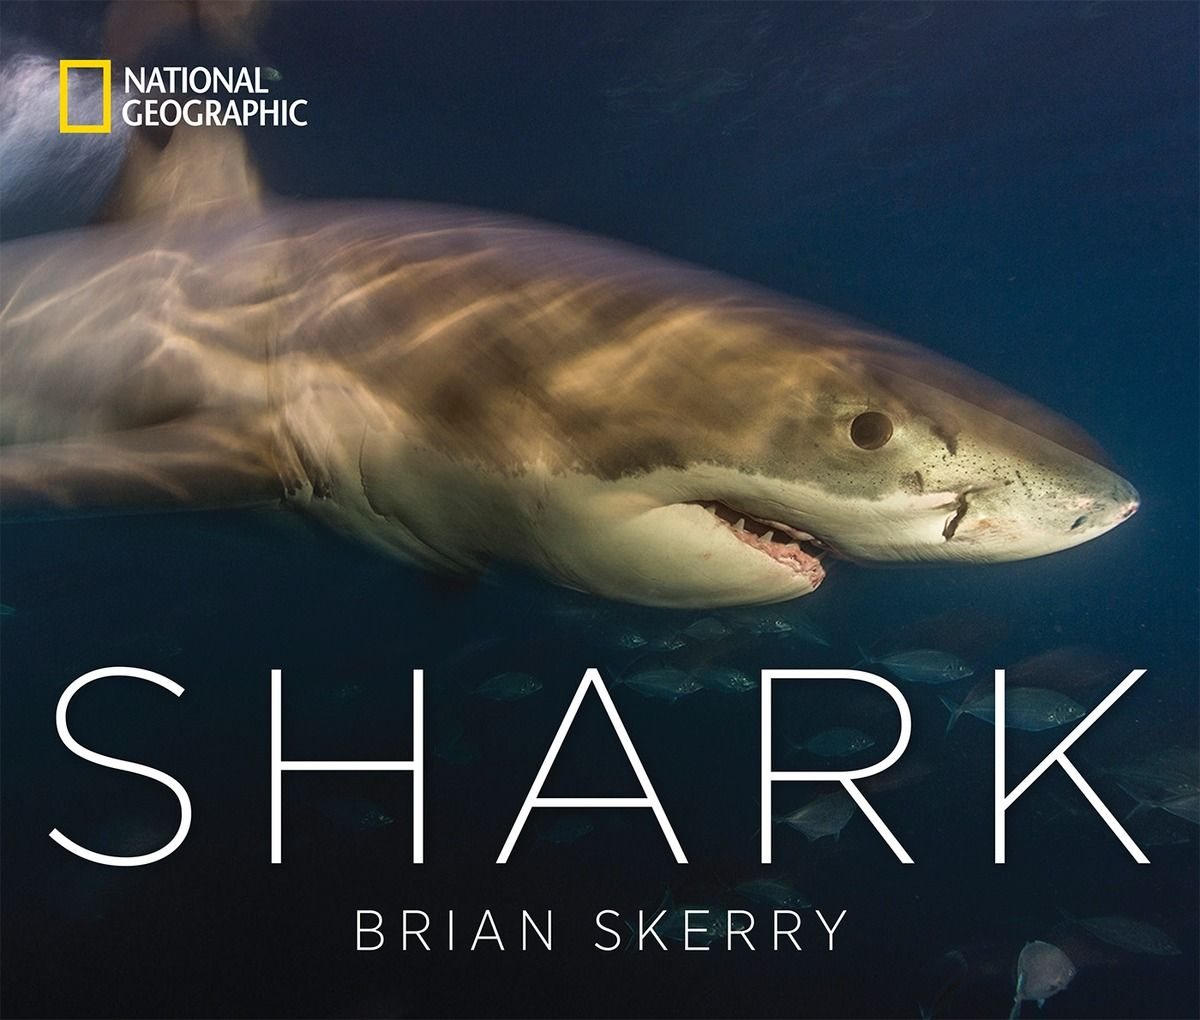 'Sharks' exhibit at National Geographic highlights photographer Brian Skerry's work